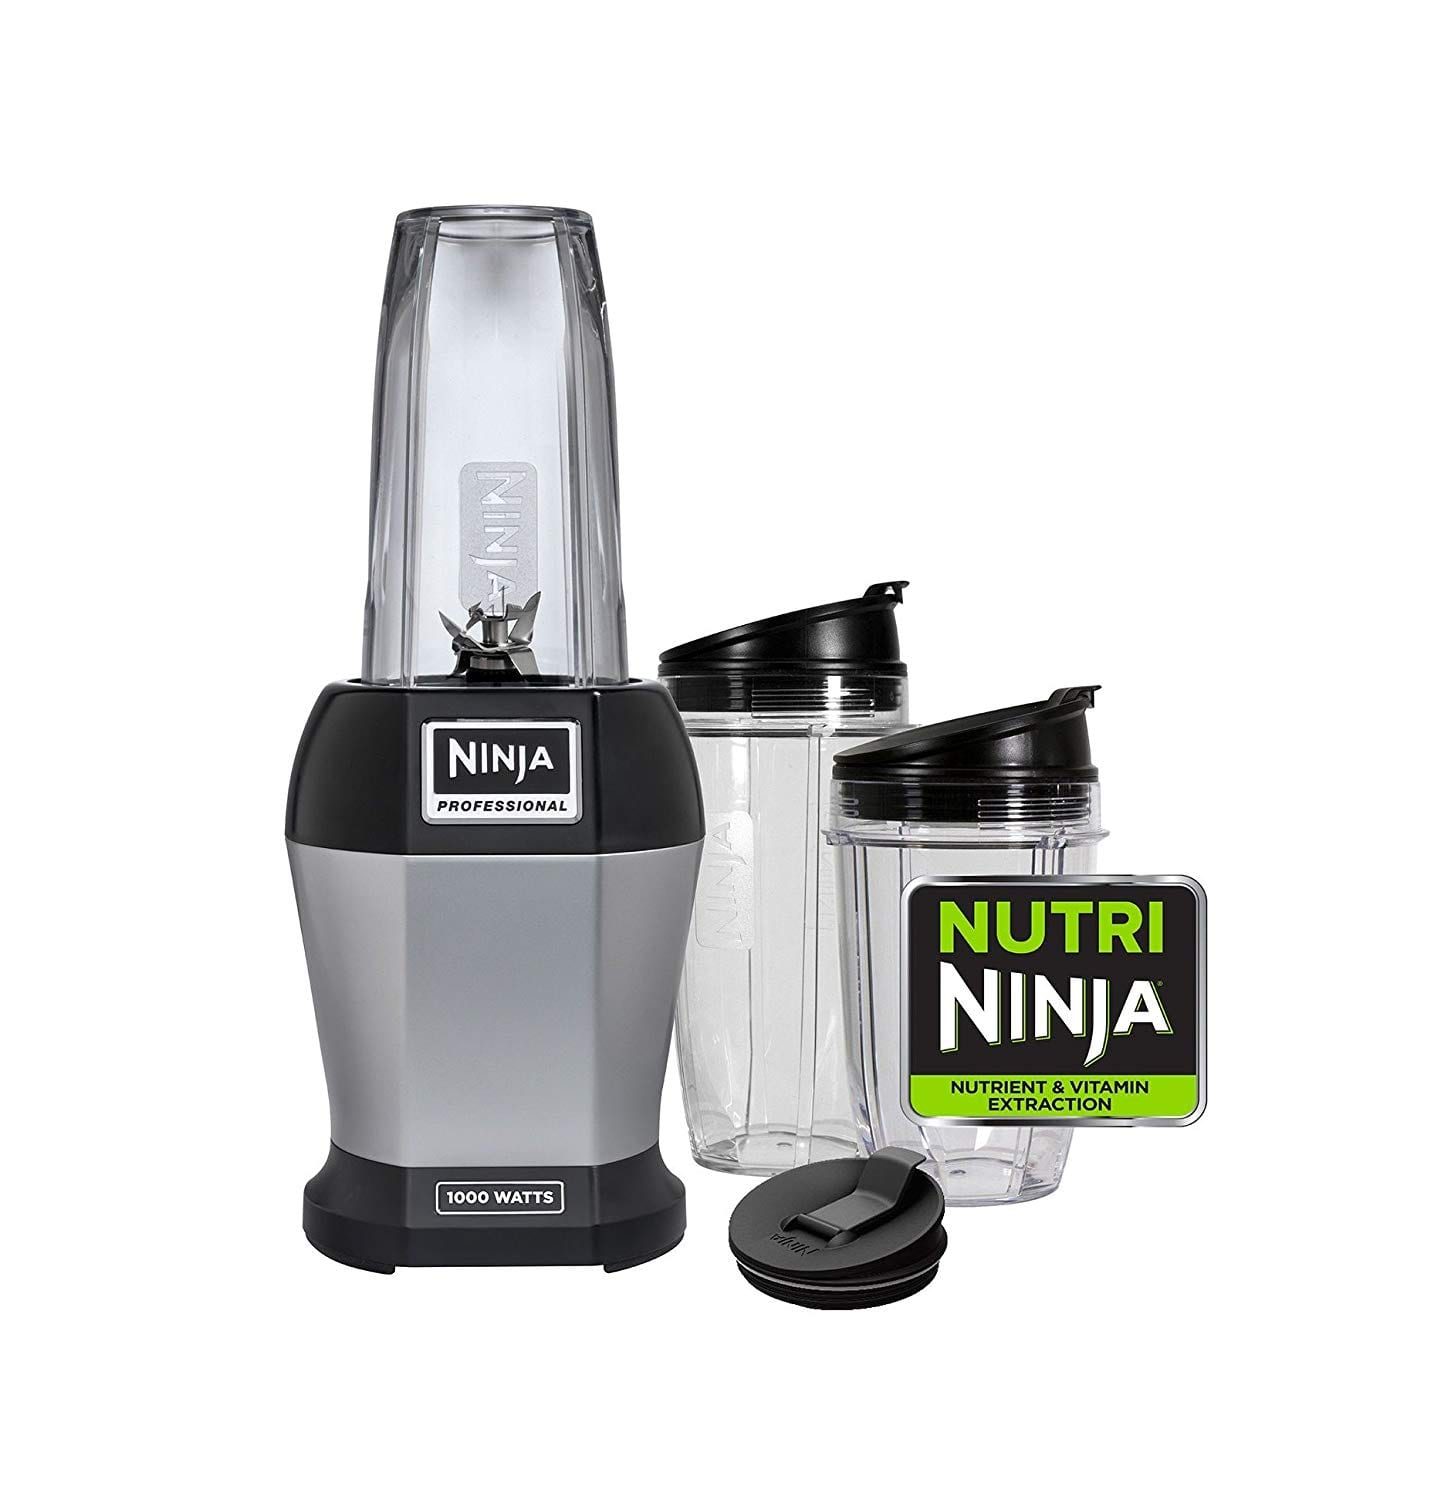 The Nutri NINJA BL455 Professional 1000 watts Personal Blender